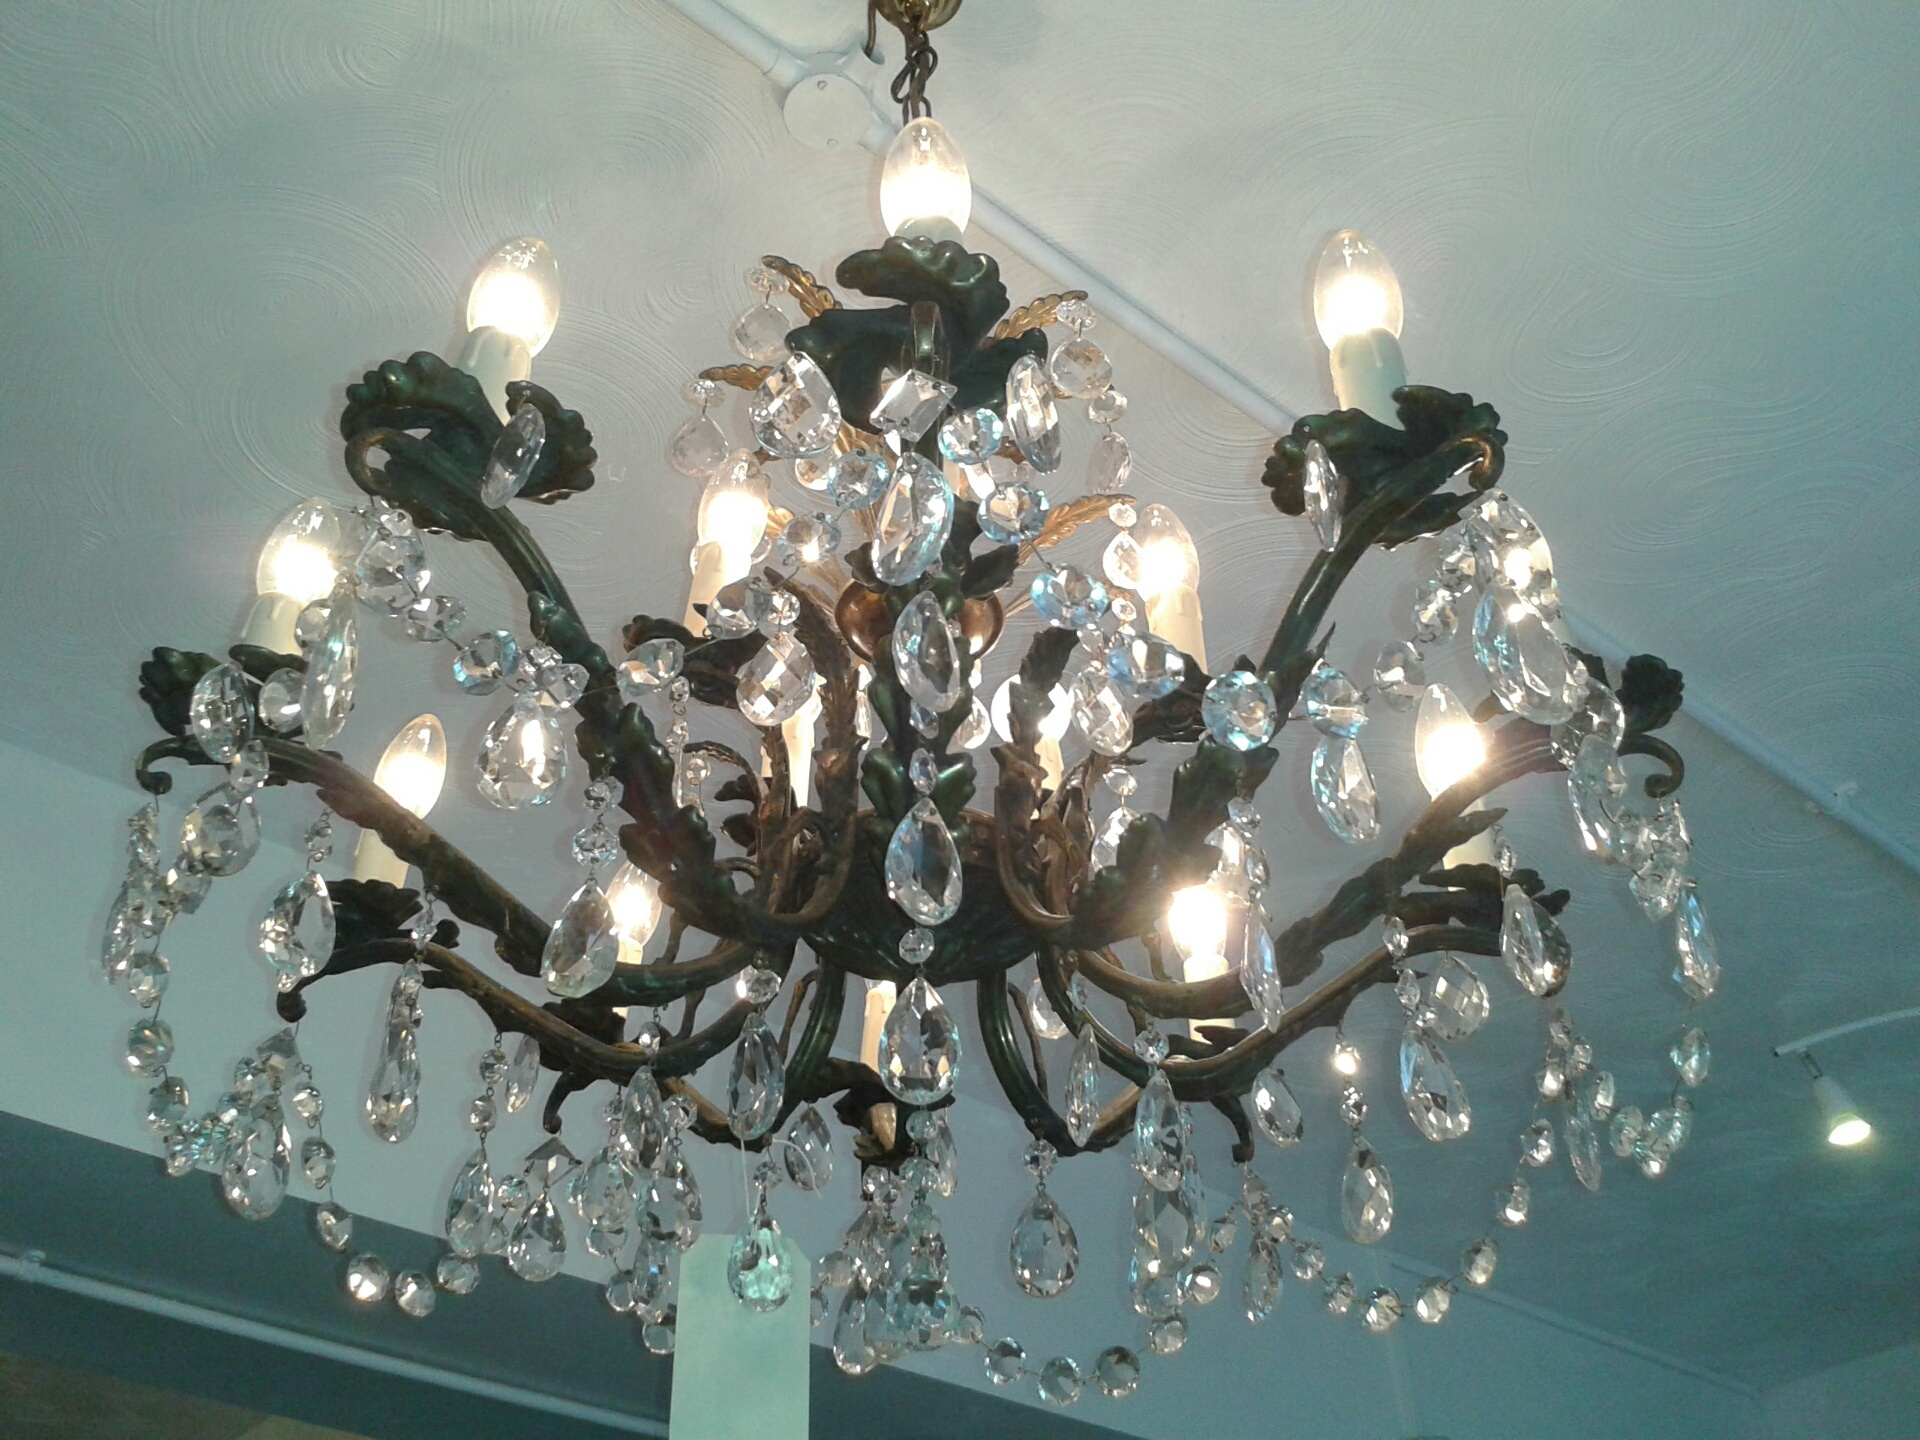 Sold Mid 20th Century 15 Light Chandelier Th121 With Regard To Edwardian Chandeliers (#12 of 12)